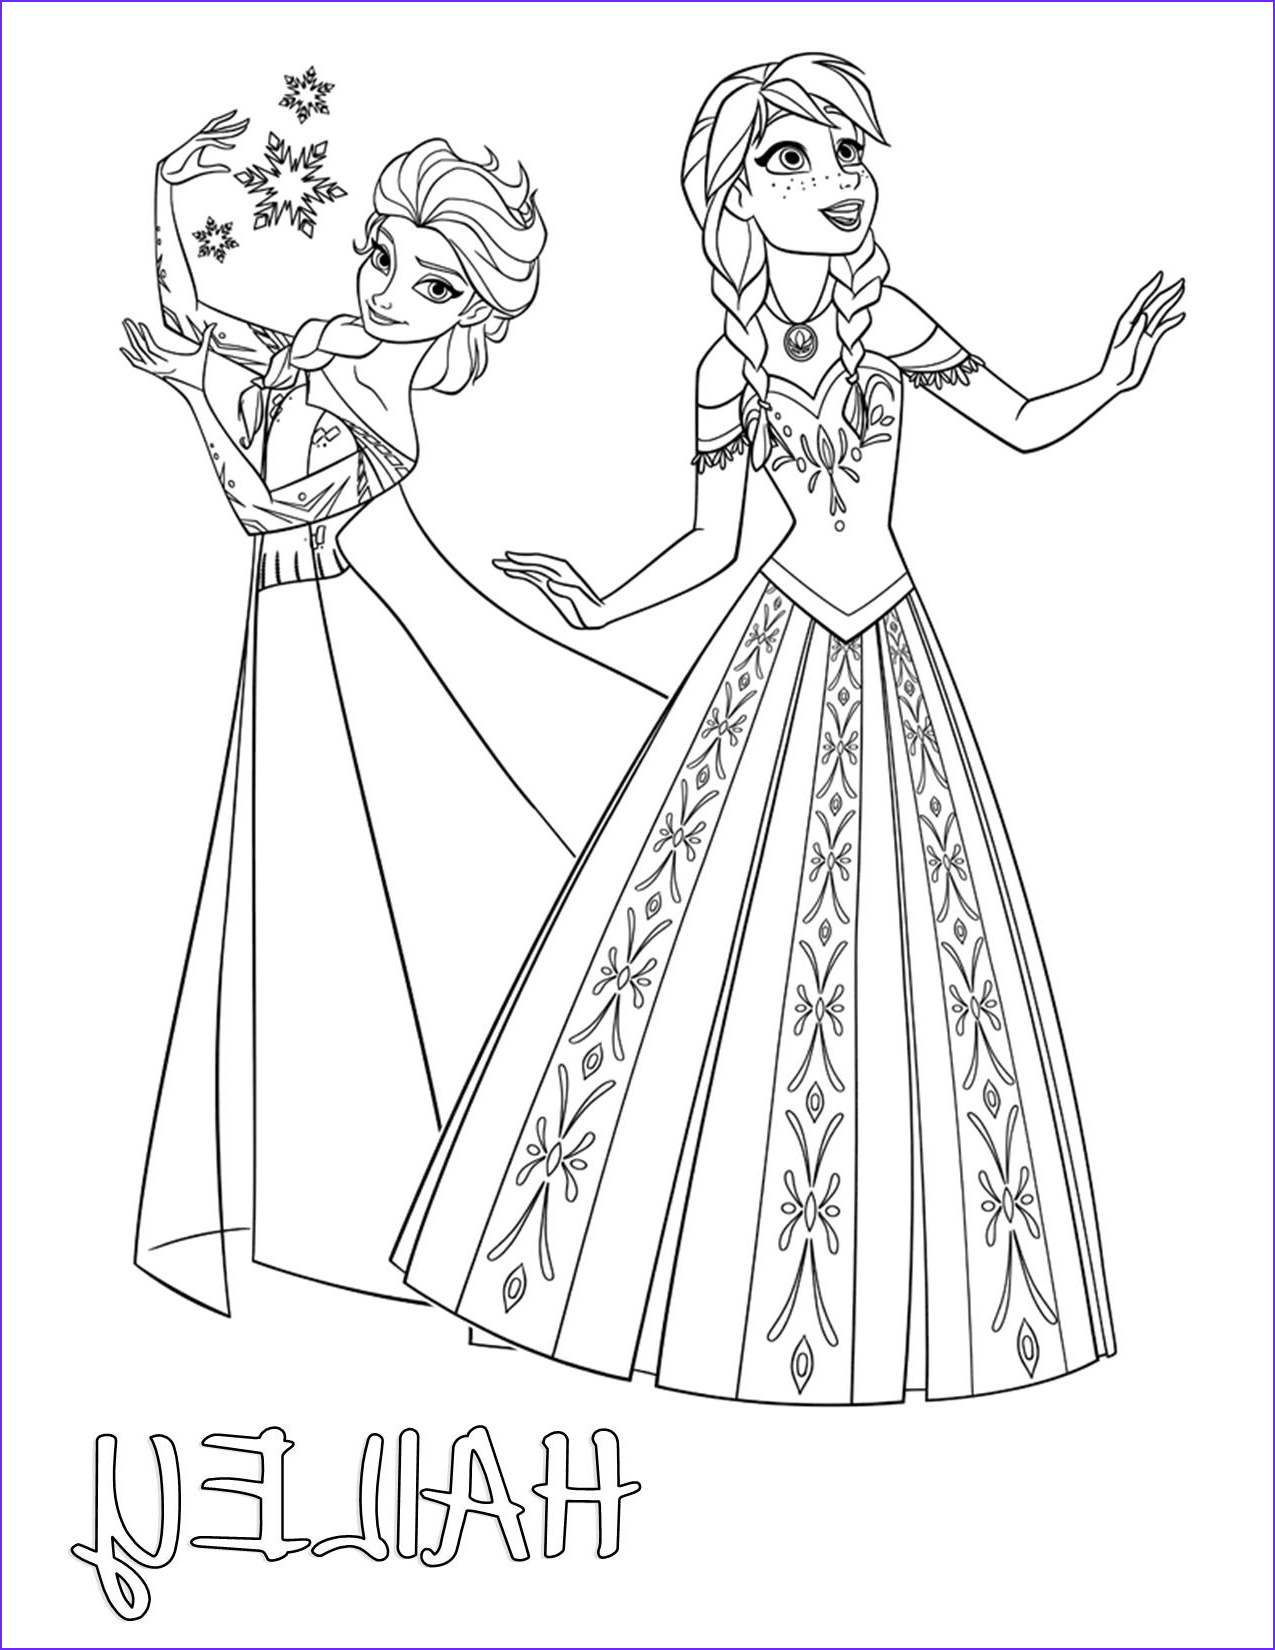 frozen elsa and anna color your own t shirt personalized